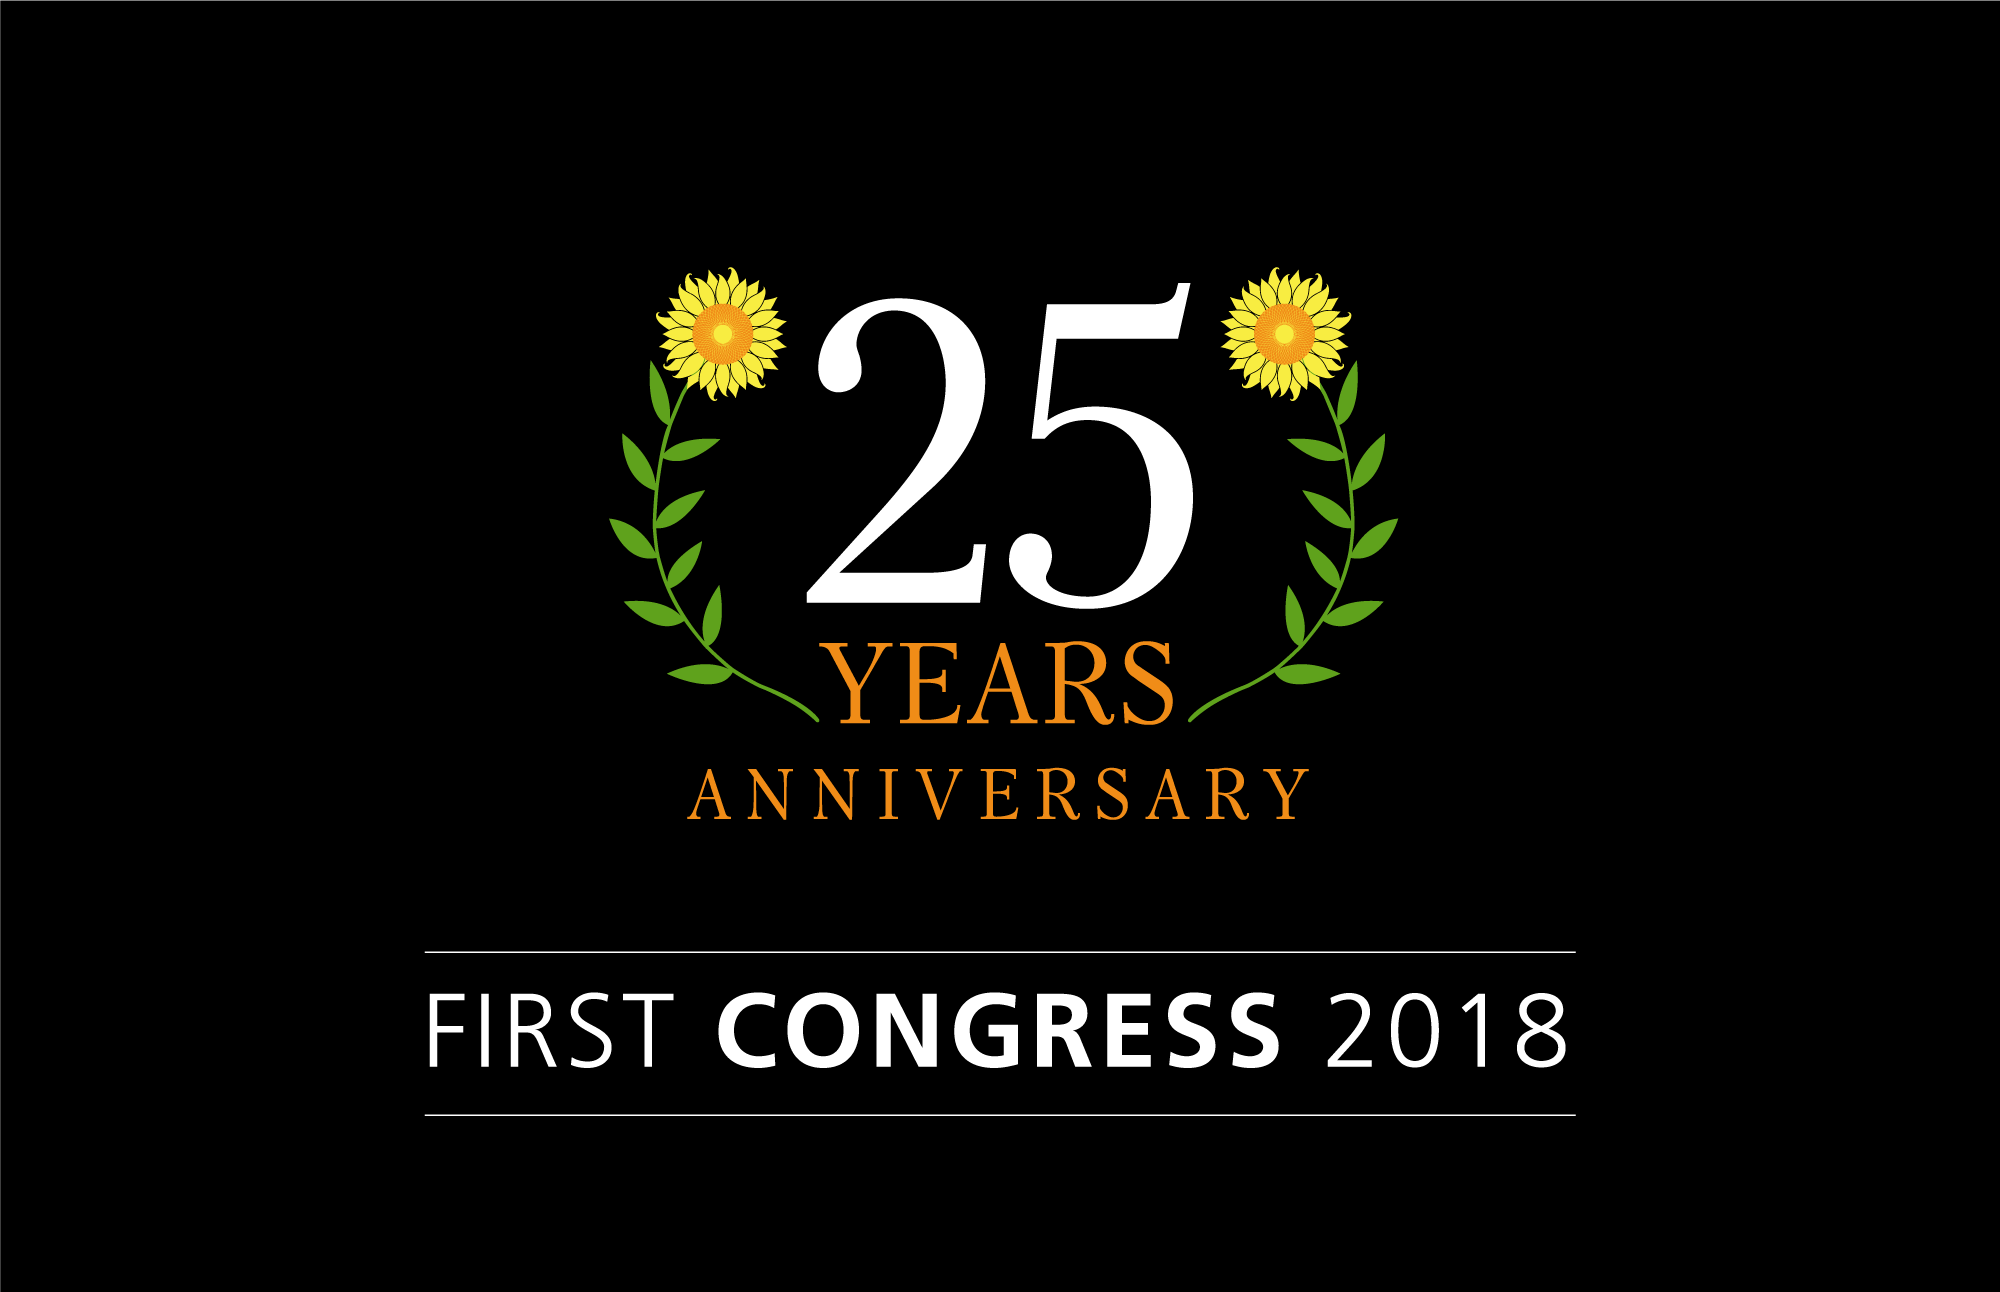 First Congress 2018 - Happy 25 Anniversary